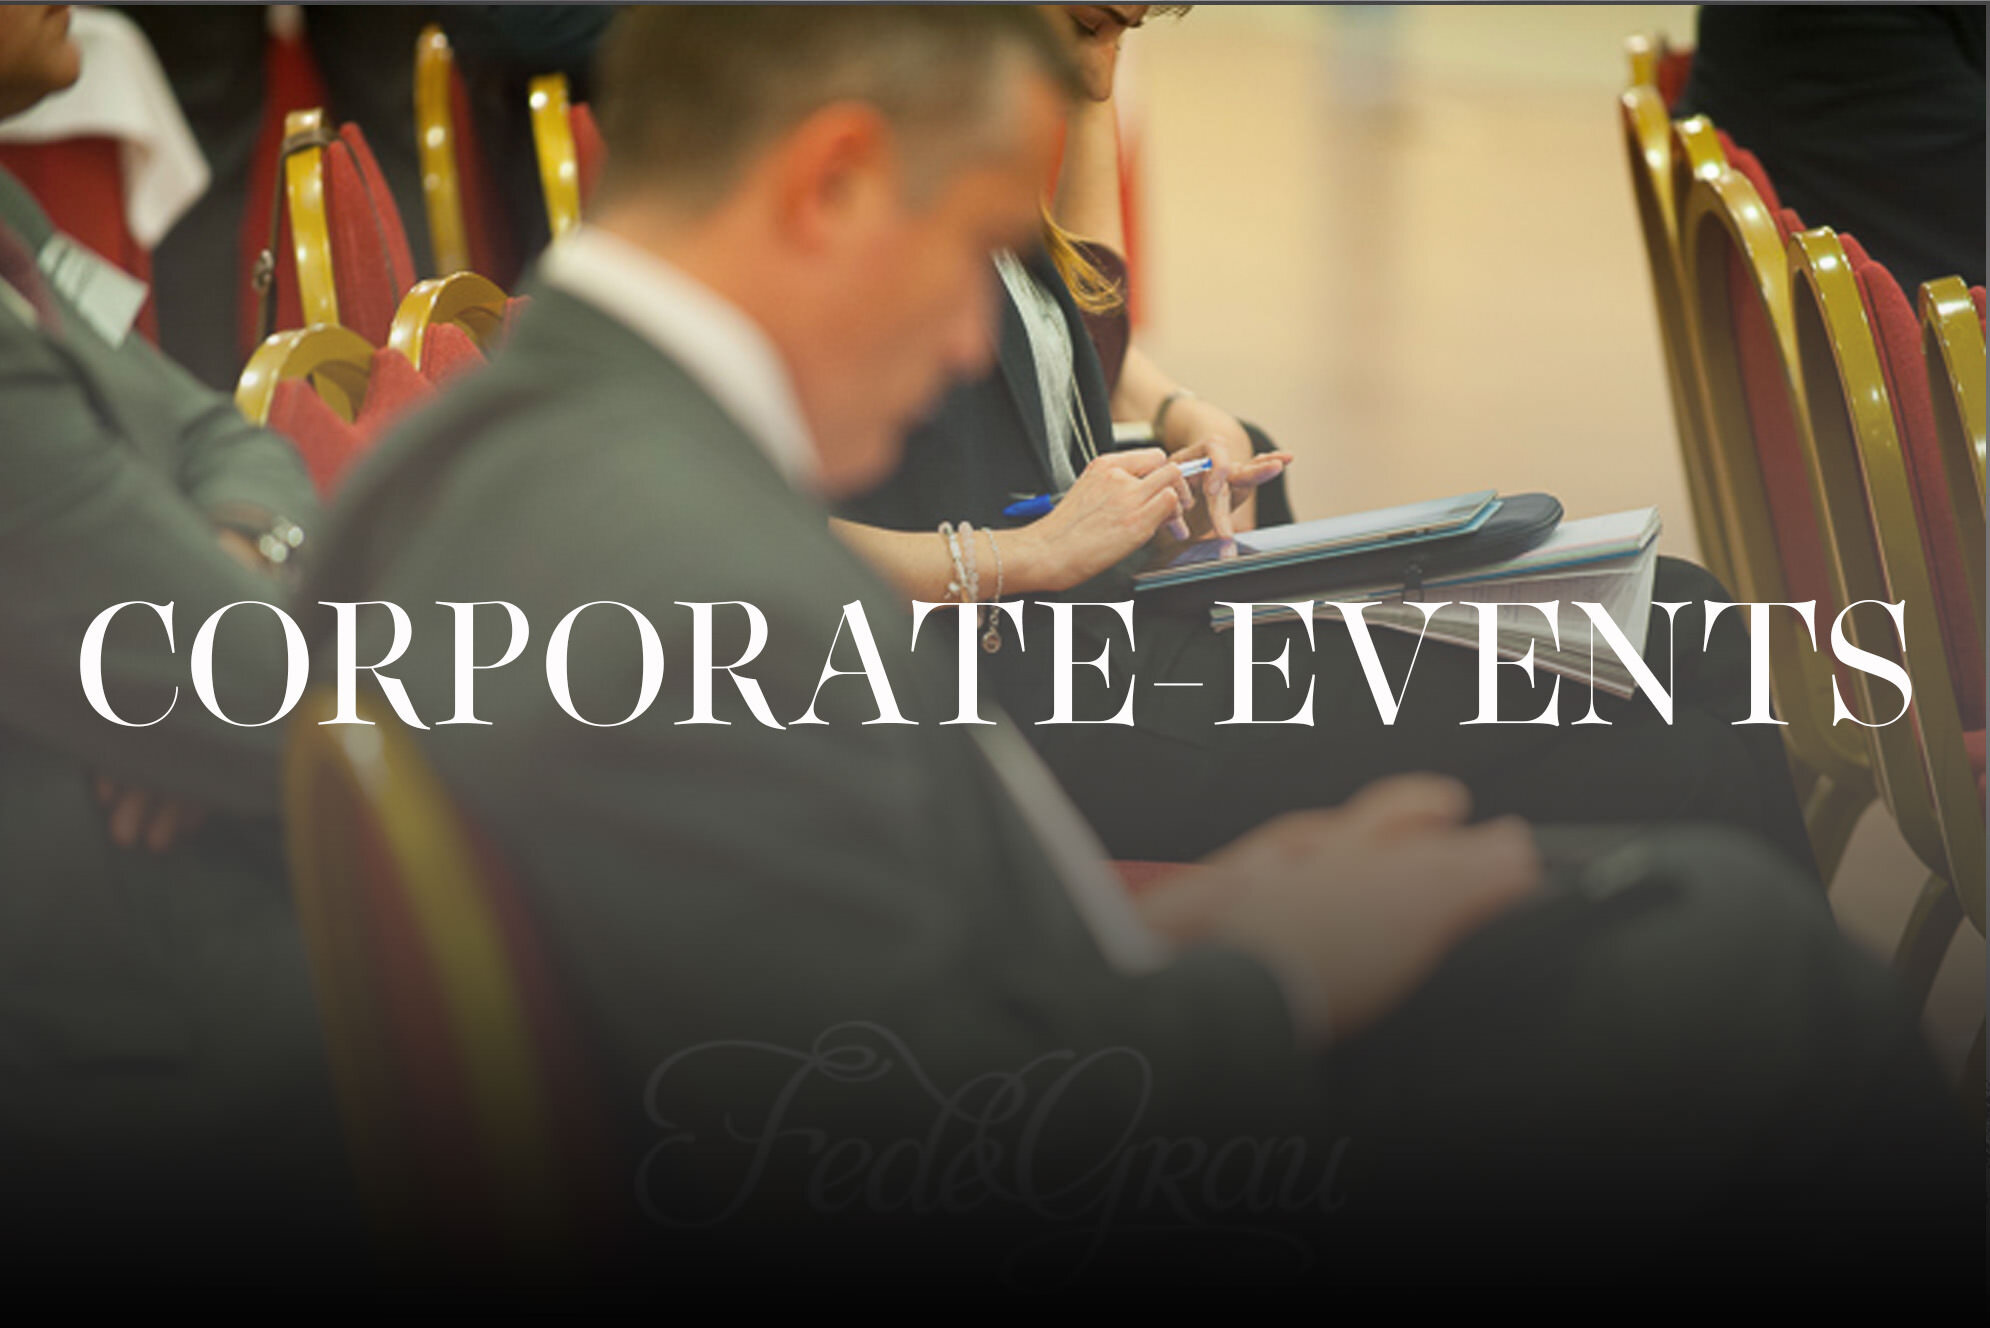 Foto-FedeGrau-CORPORATE EVENTS.jpg